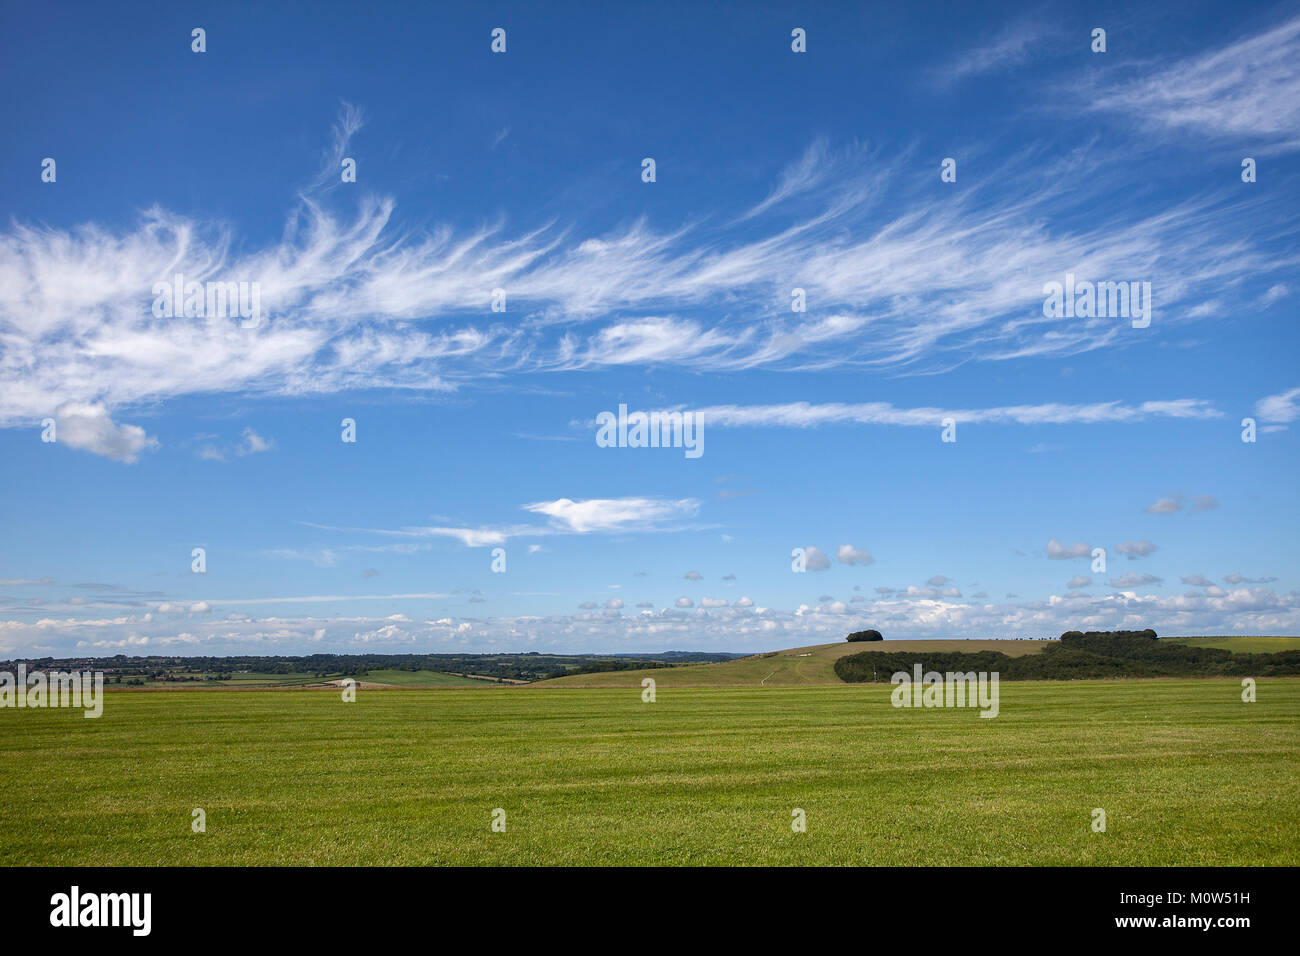 A discrete band of Cirrus cloud against a blue sky, looking north from Compton Abbas Airfield, Dorset. - Stock Image